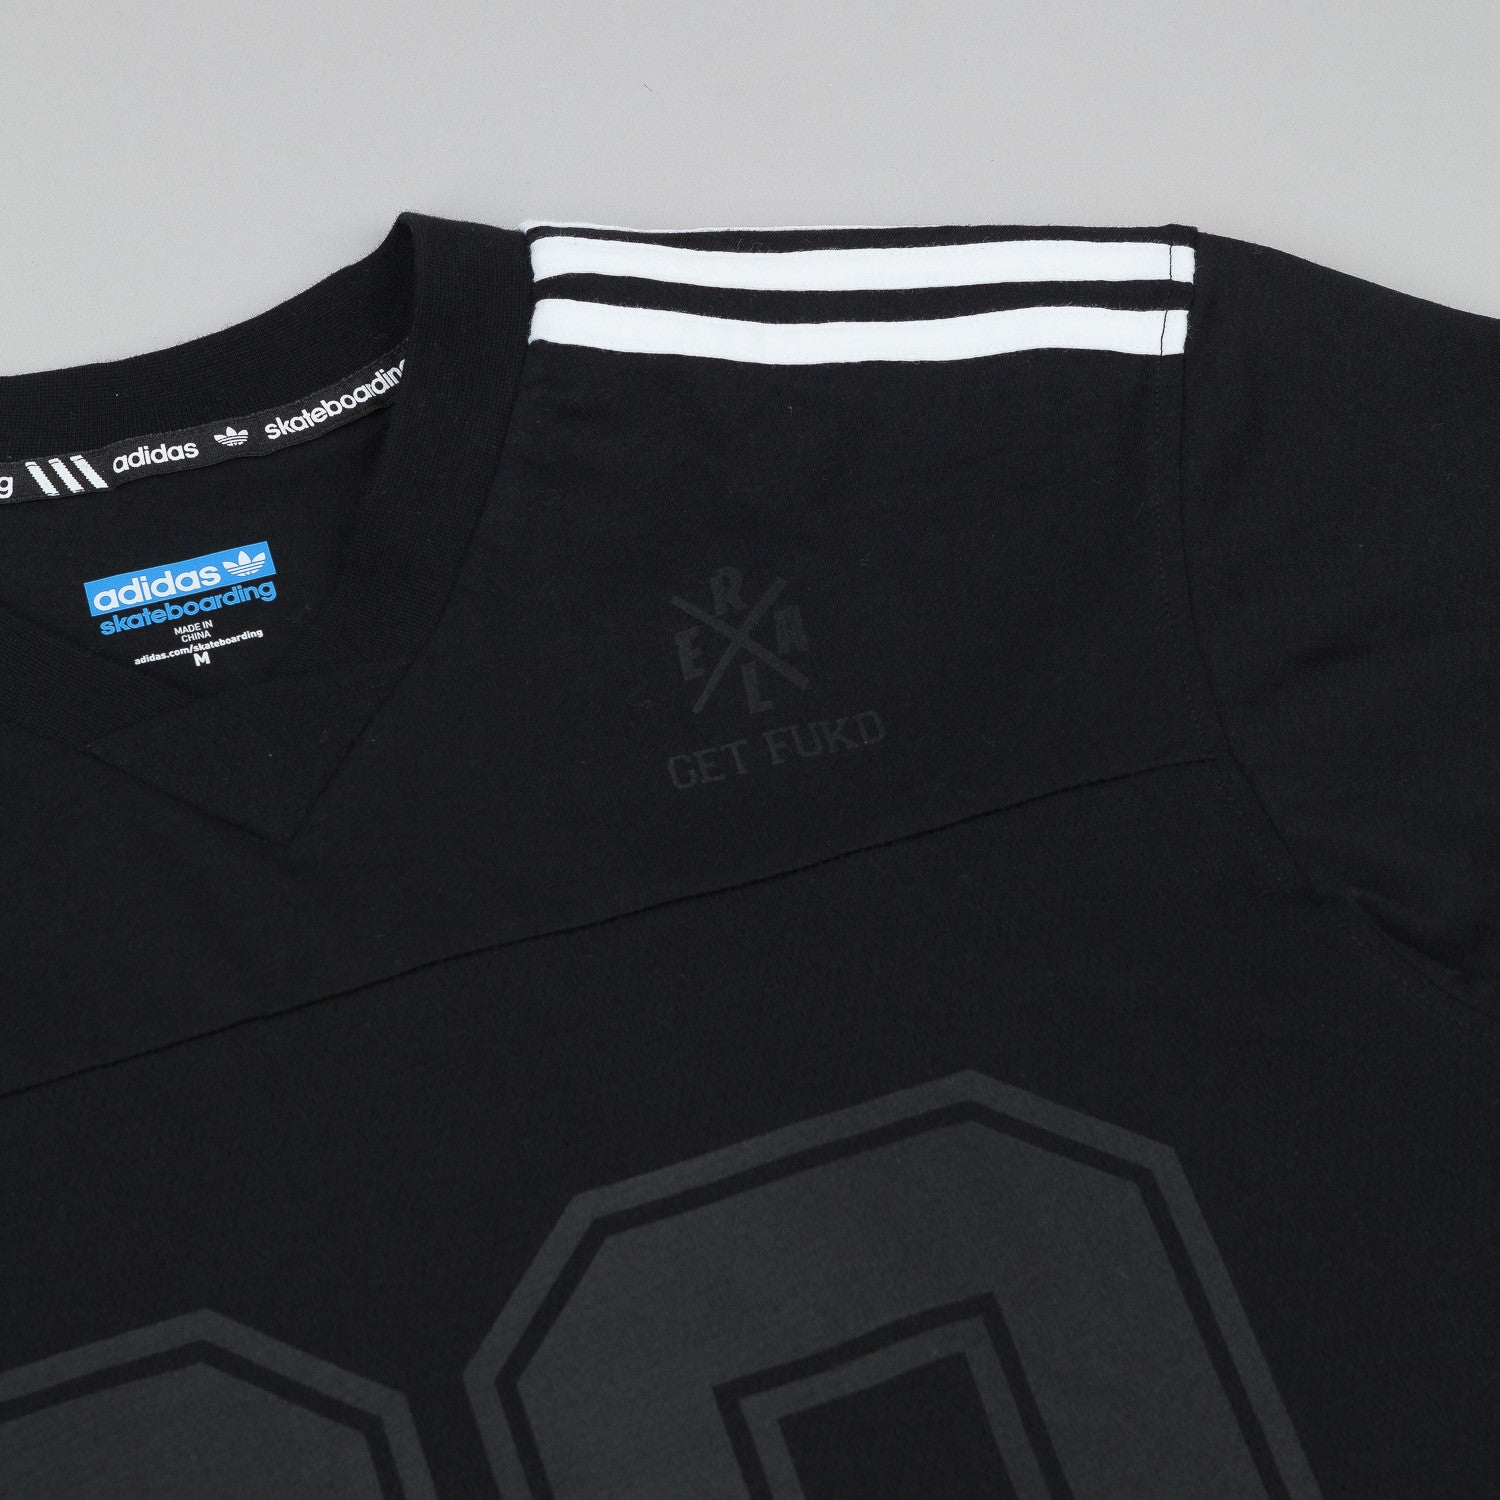 Adidas X Real Jake Short Sleeve V-Neck Jersey - Black